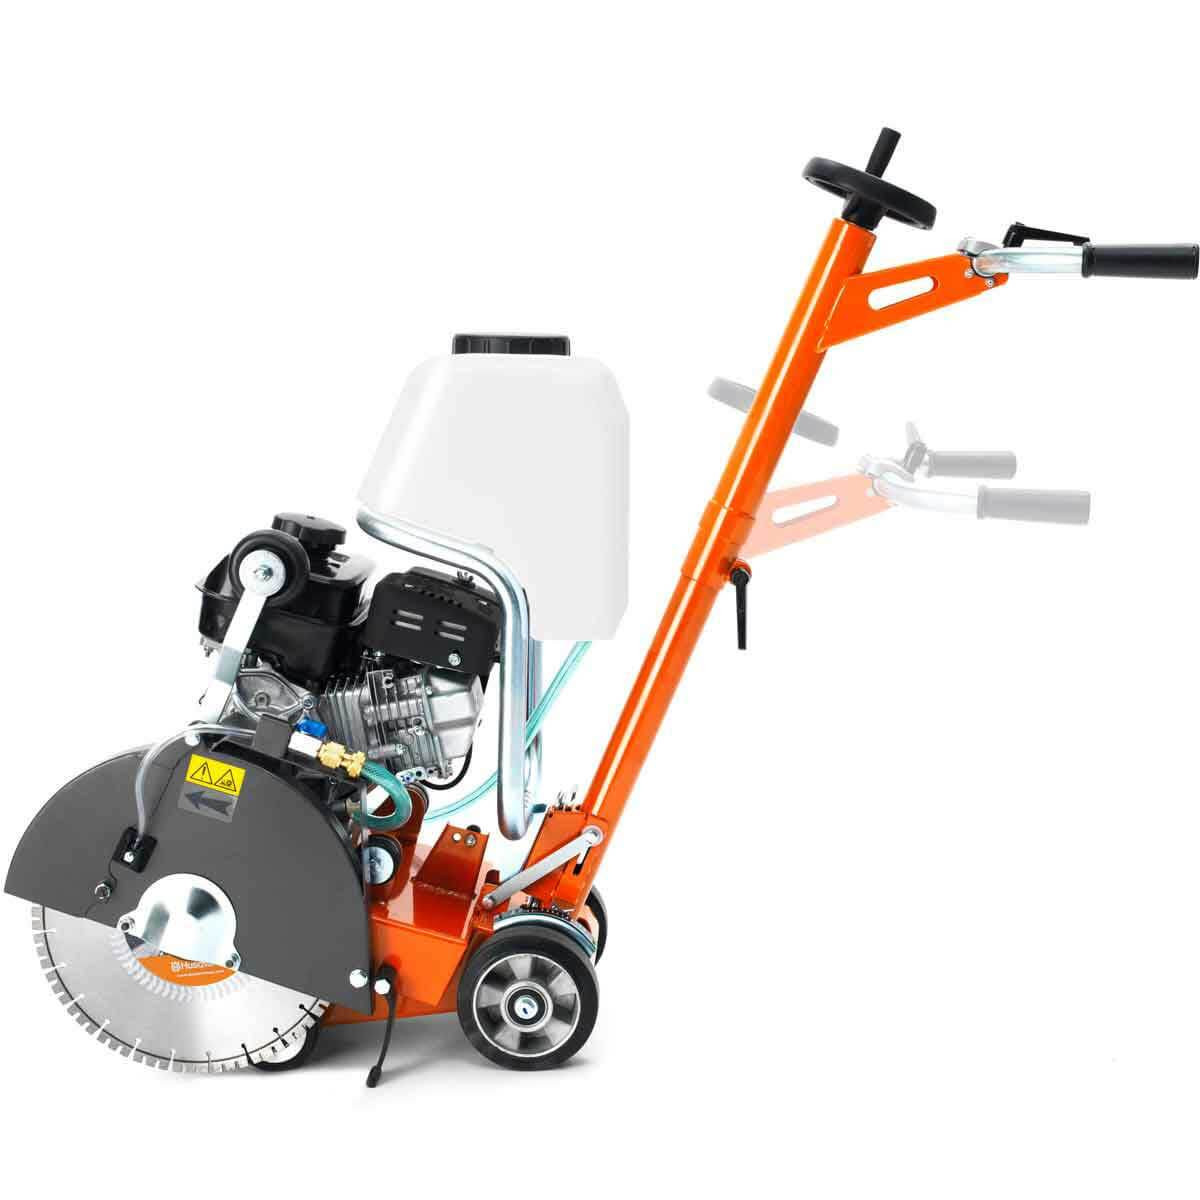 Husqvarna FS309 floor saw